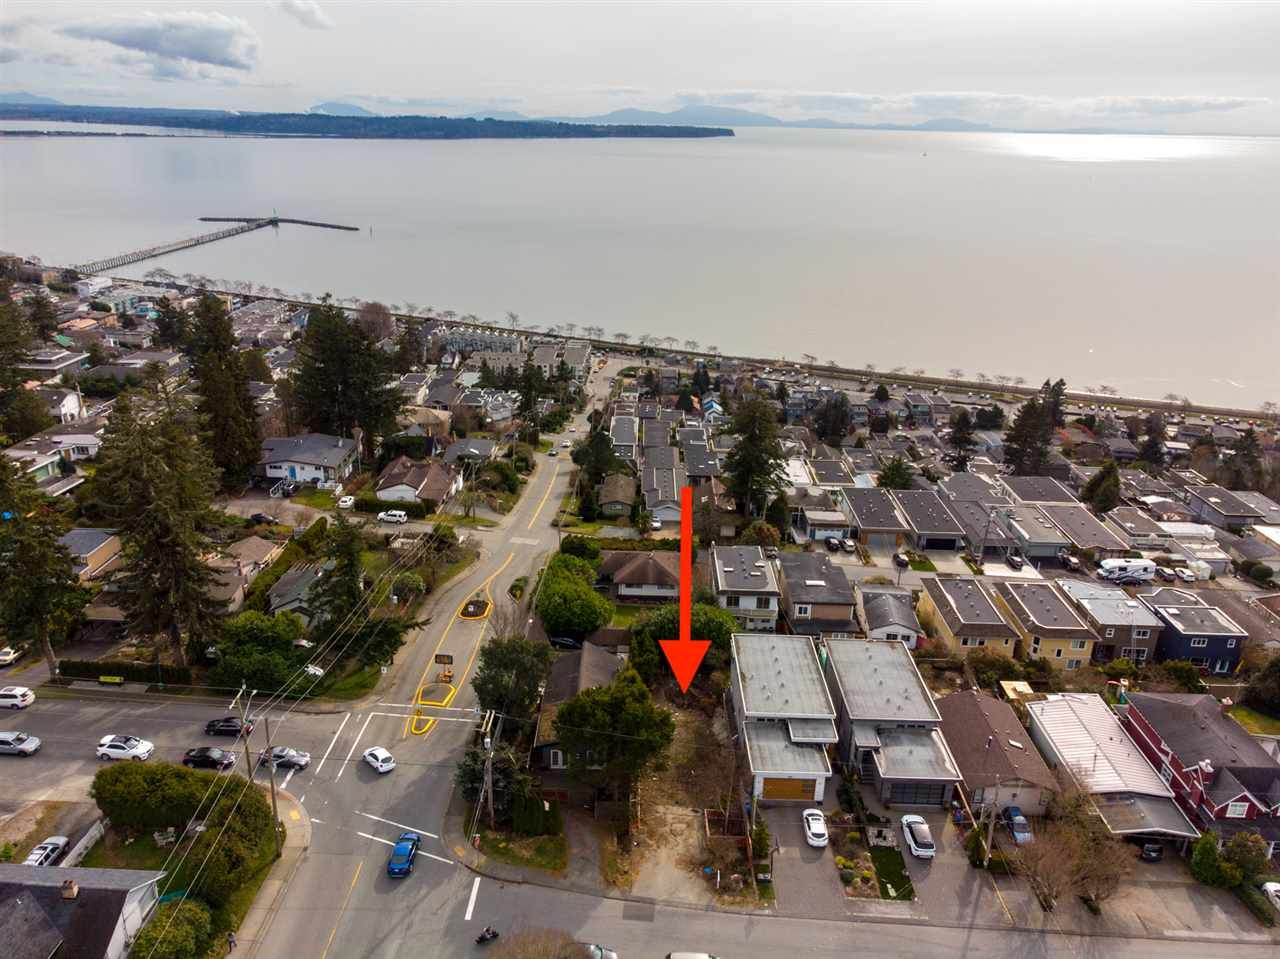 Main Photo: 14786 THRIFT Avenue: White Rock Land for sale (South Surrey White Rock)  : MLS®# R2542759